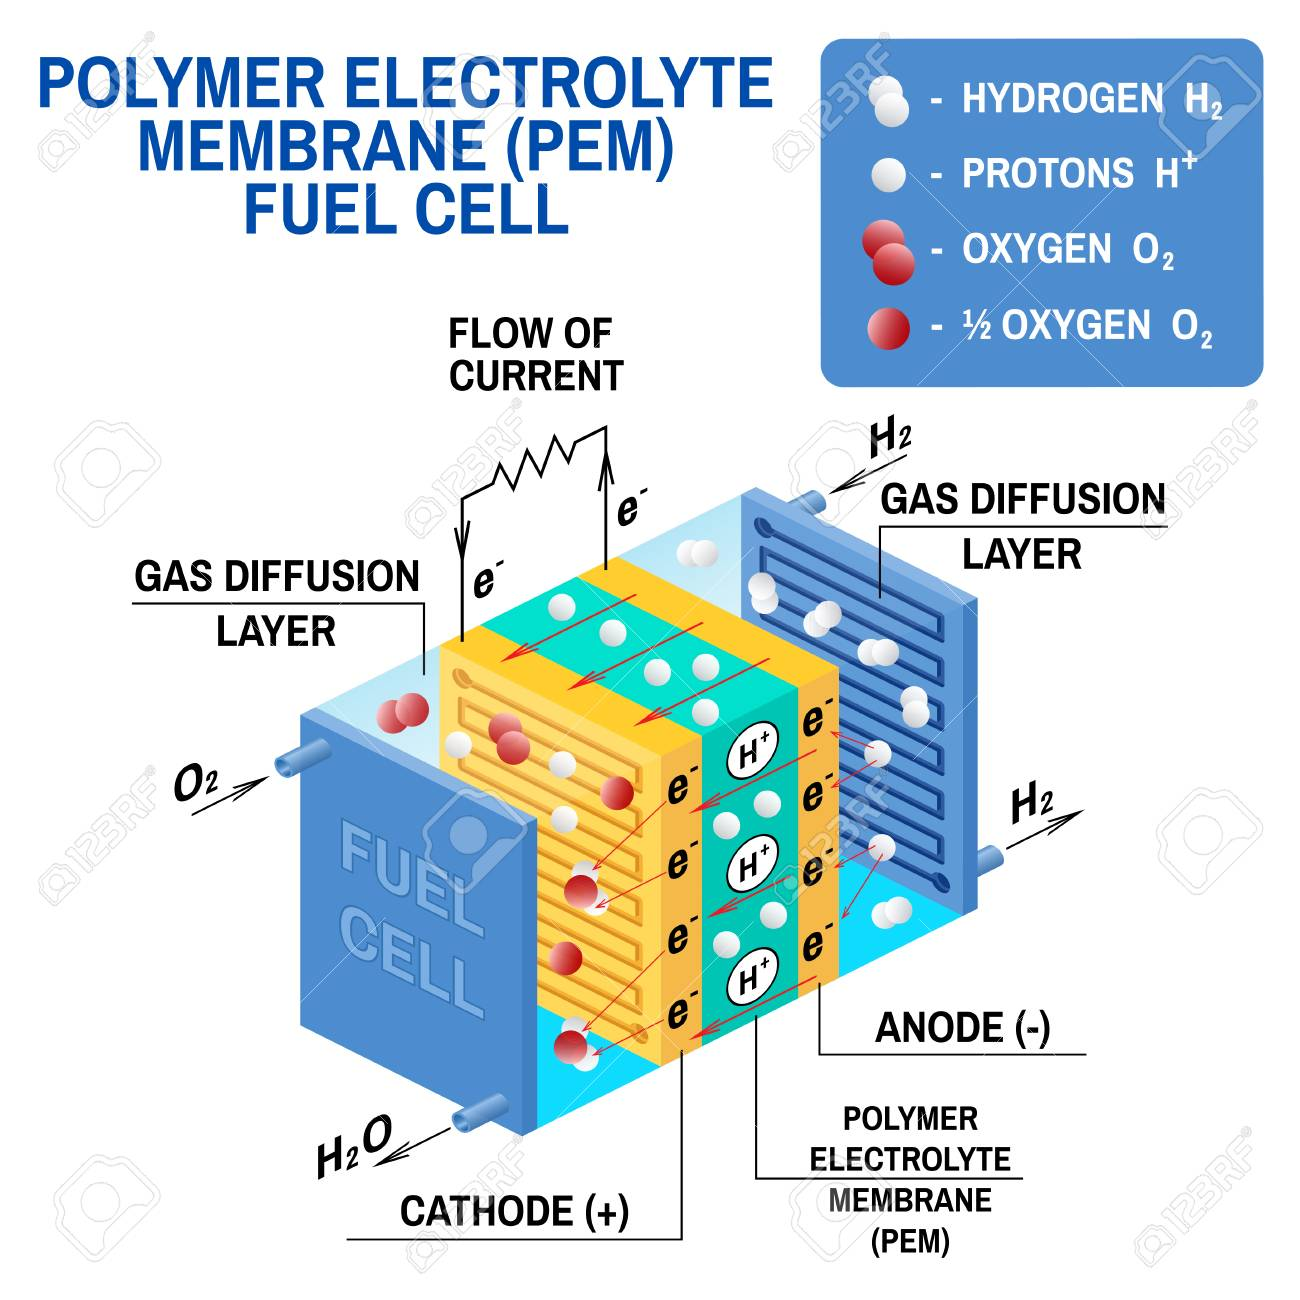 hight resolution of fuel cell diagram vector device that converts chemical potential energy into electrical energy